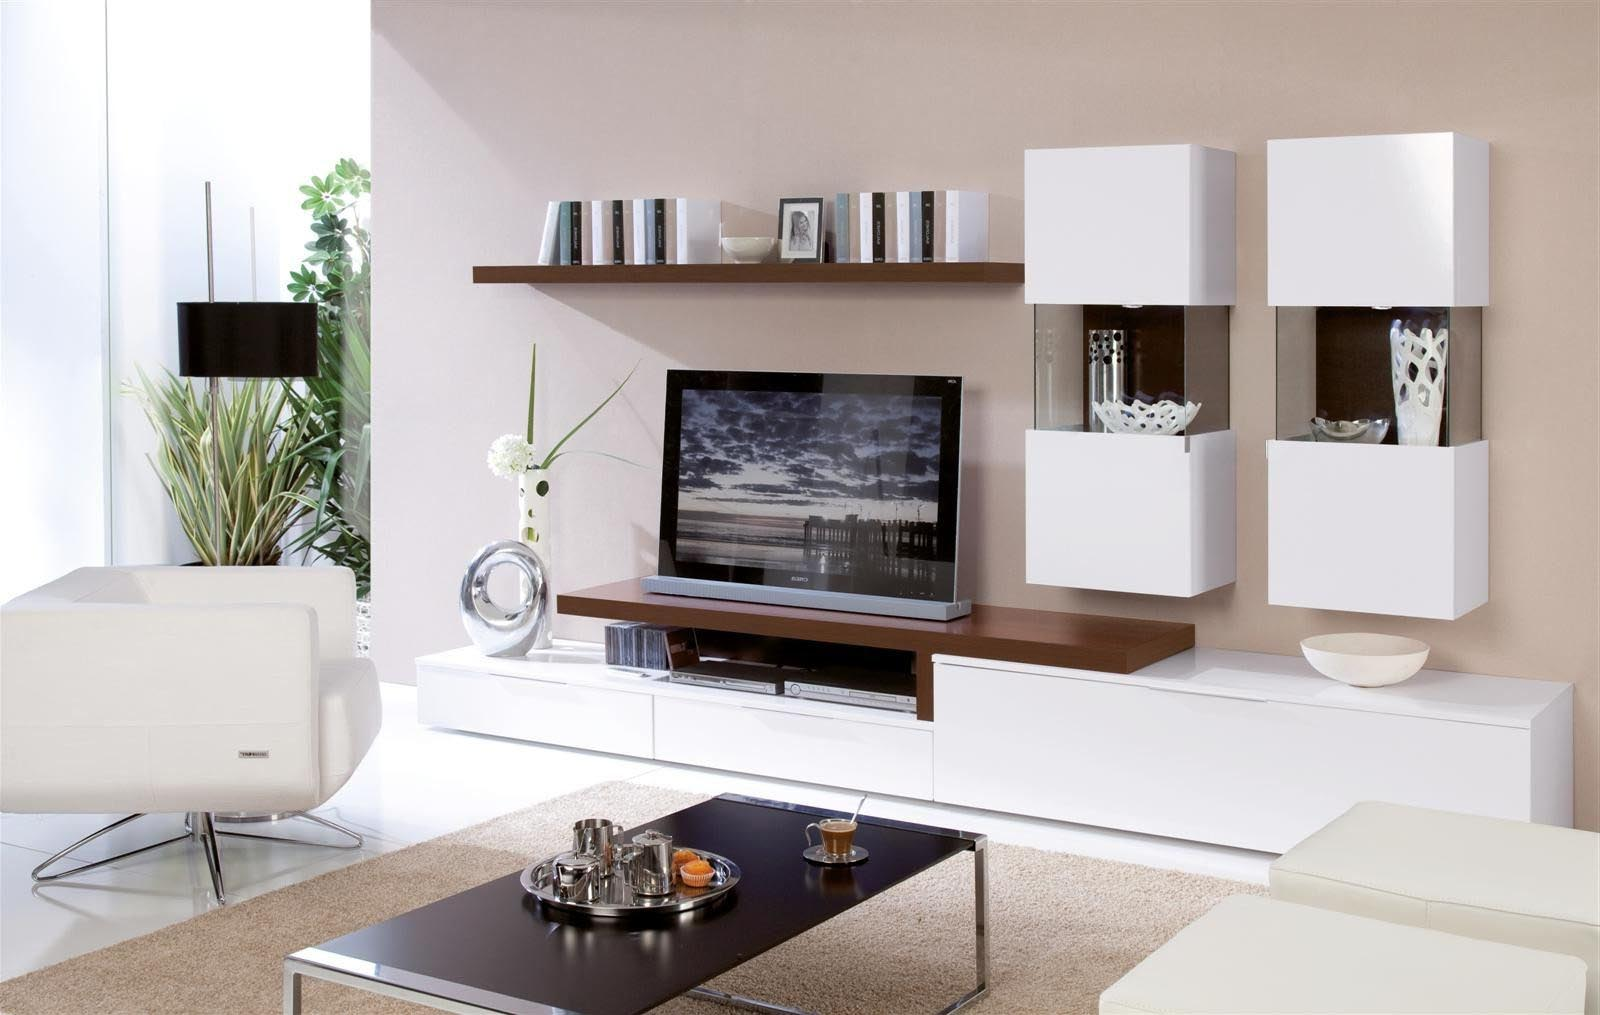 How to add decorative wall shelves with elegant style Decorative shelves ideas living room